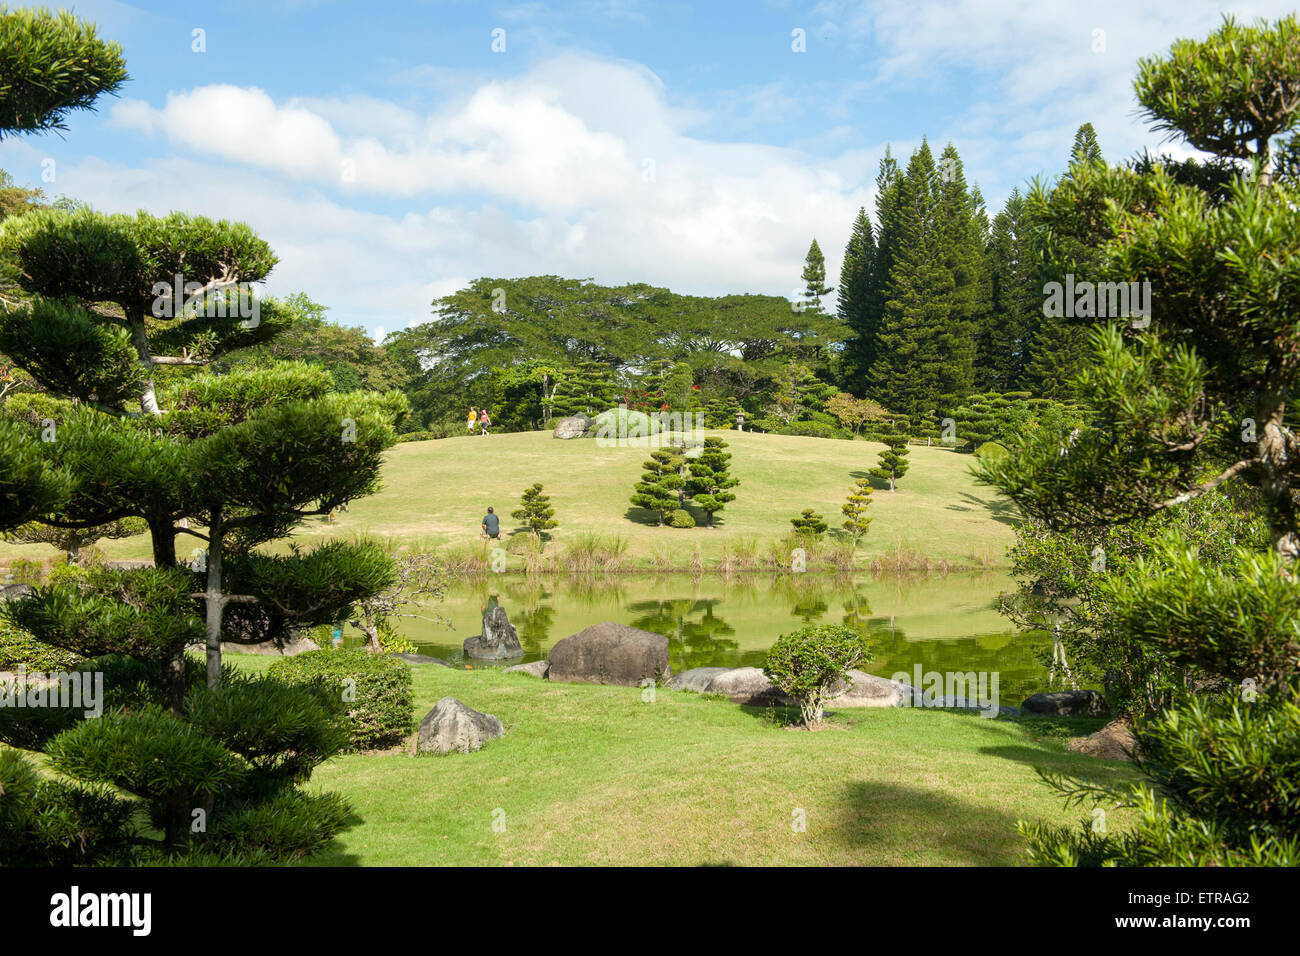 Westindia High Resolution Stock graphy and Alamy